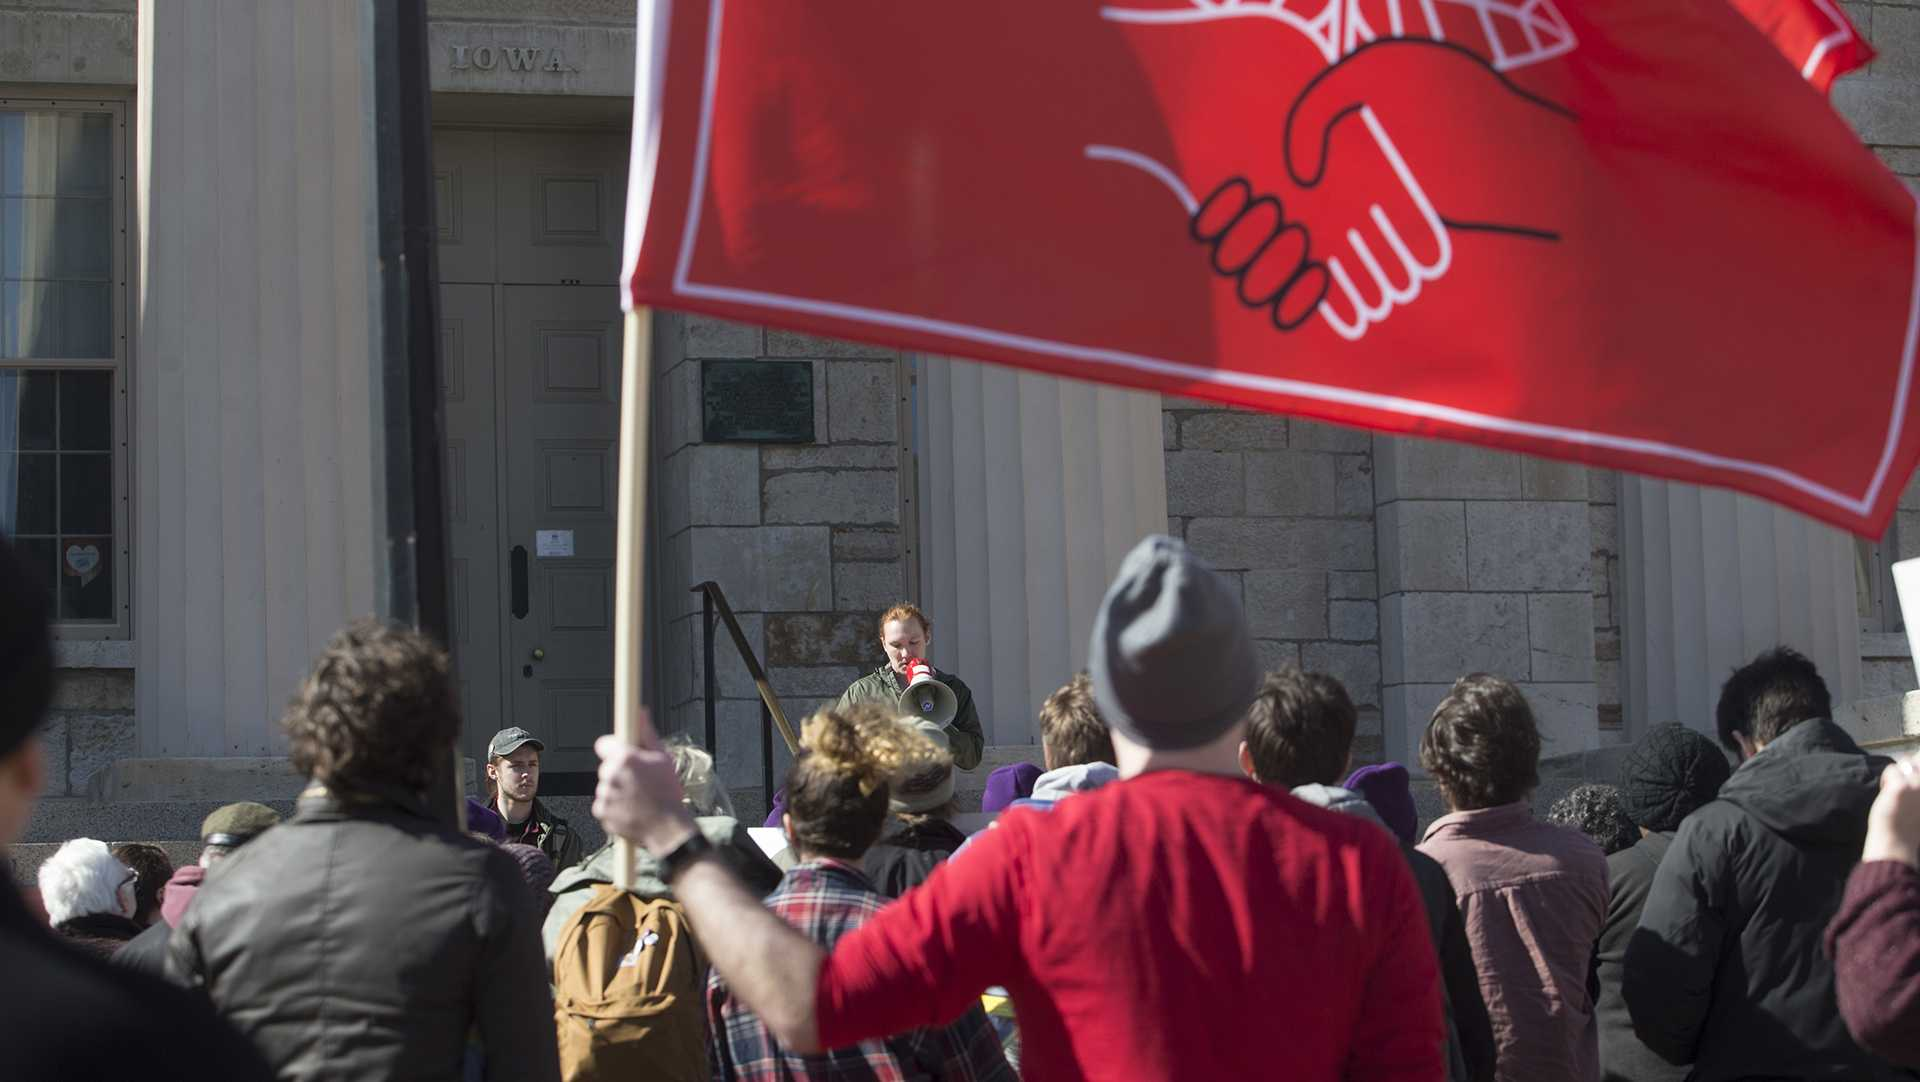 Nontenured faculty gather at the Pentacrest to voice their concerns